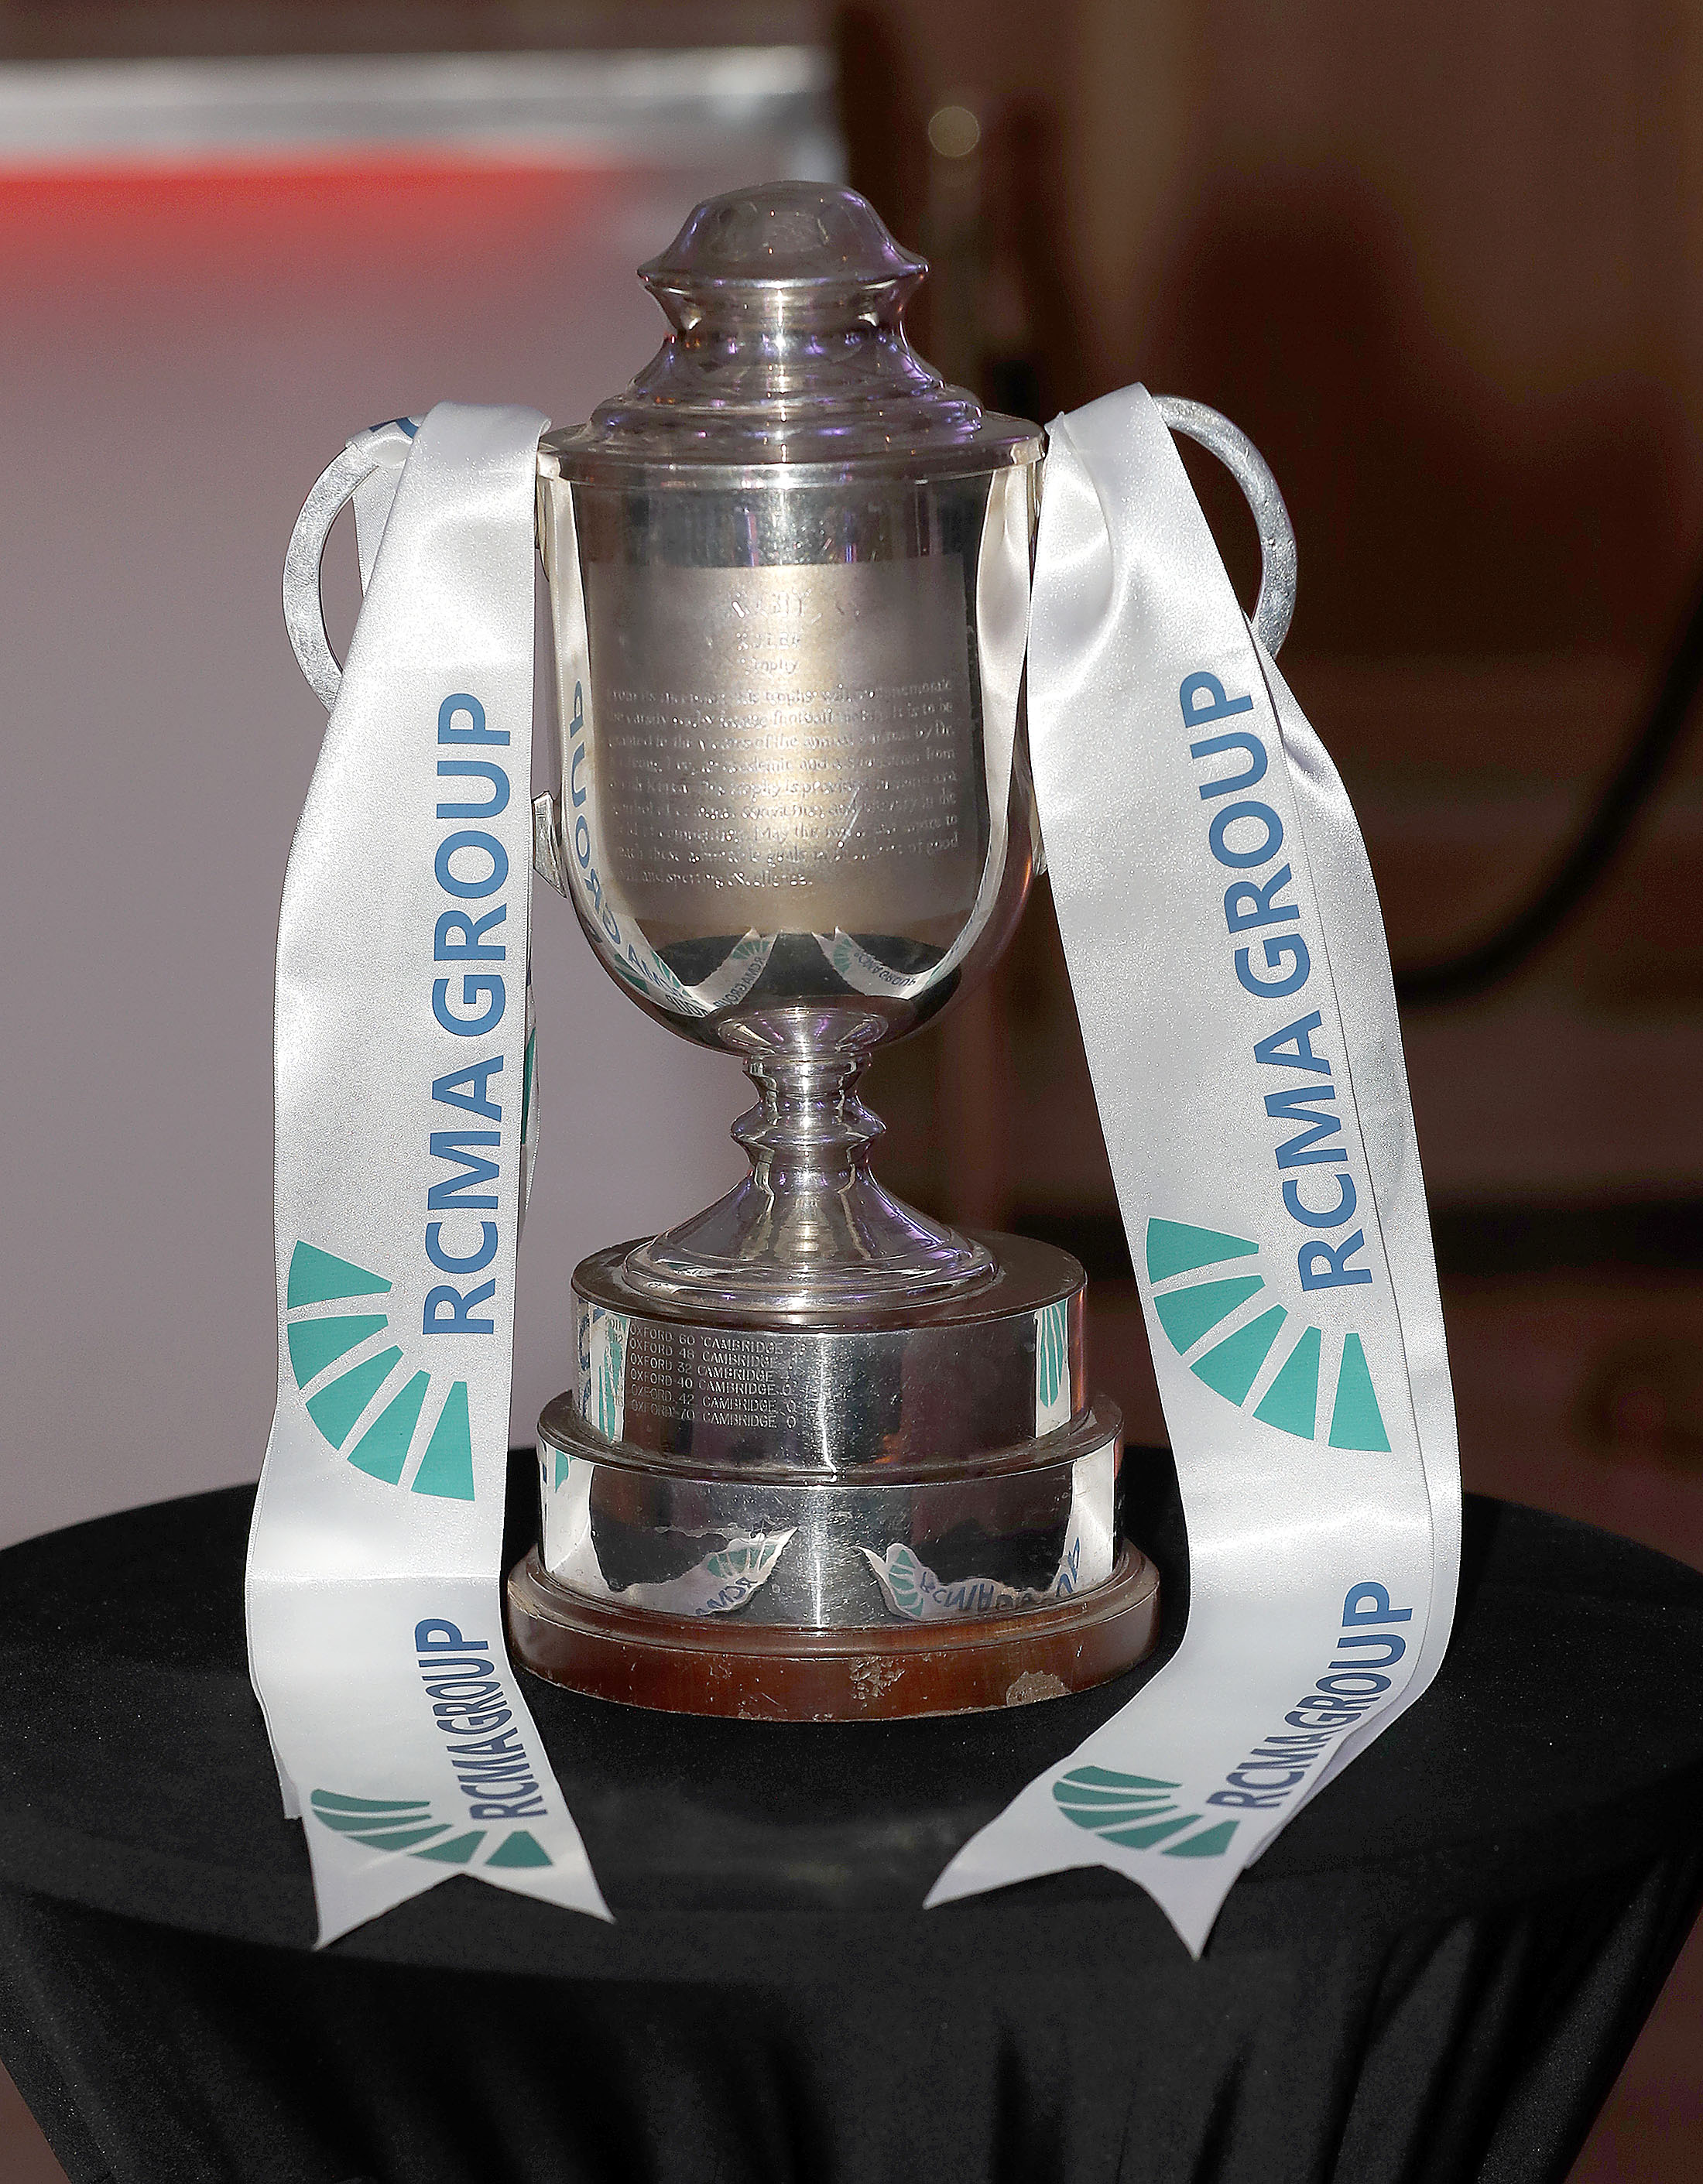 RCMA trophy during the RCMA Varsity Rugby League game between Cambridge University and Oxford University at the HAC Ground, Moorgate, London on Fri Mar 9, 2018